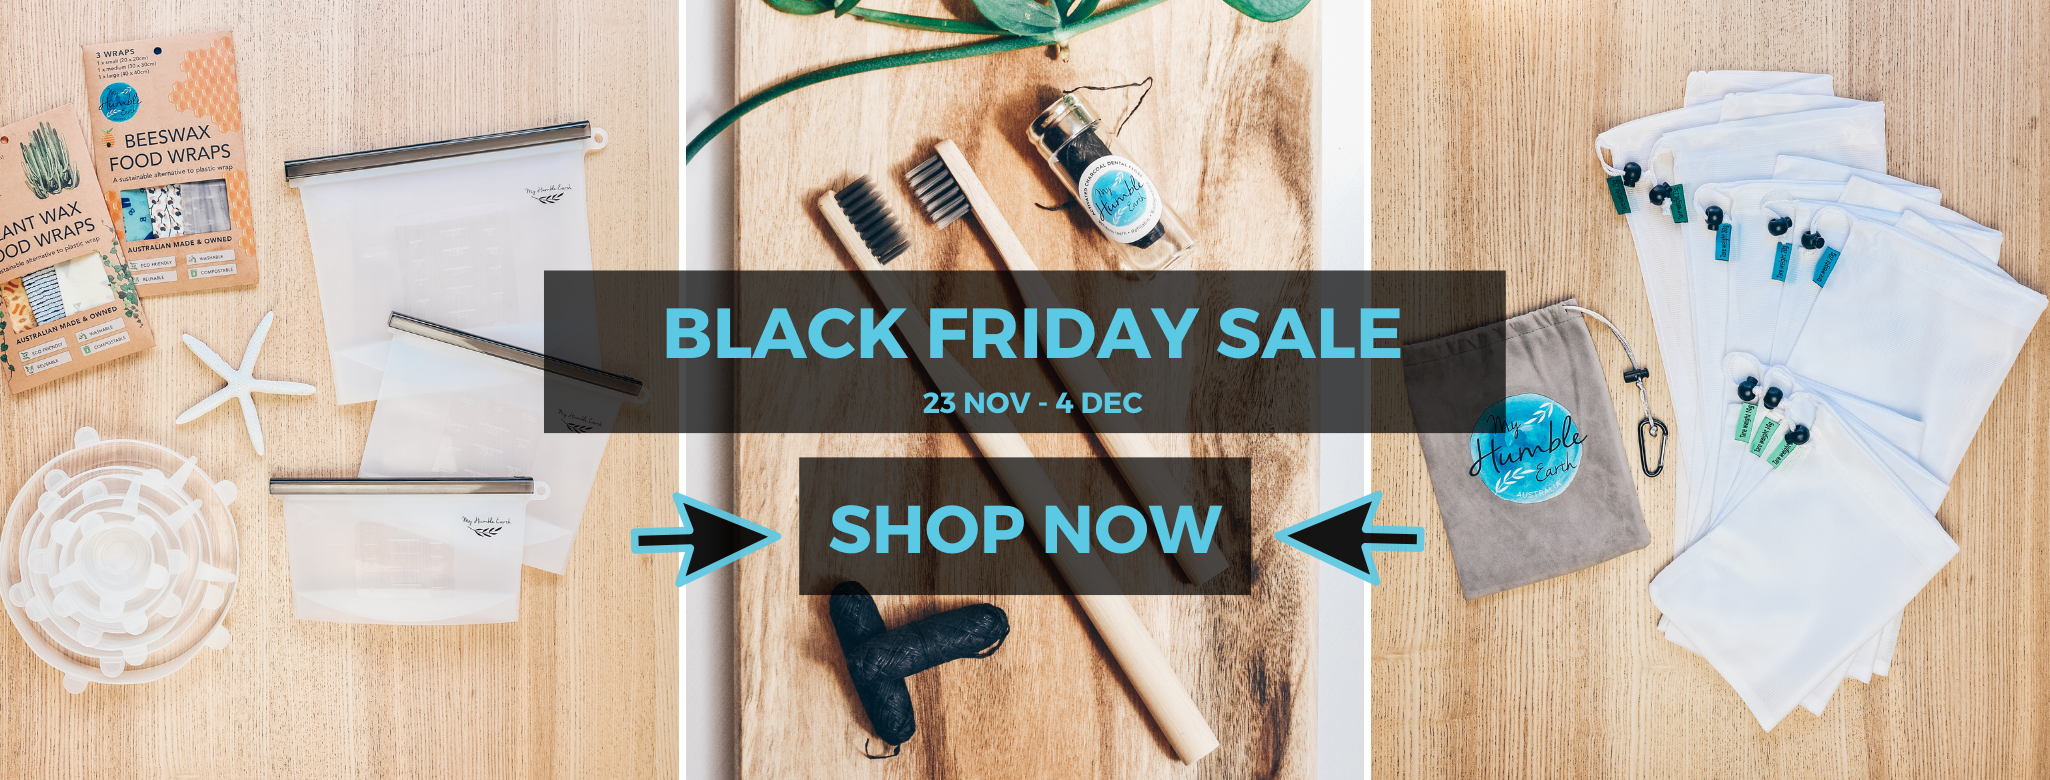 Black Friday Sale Eco Products